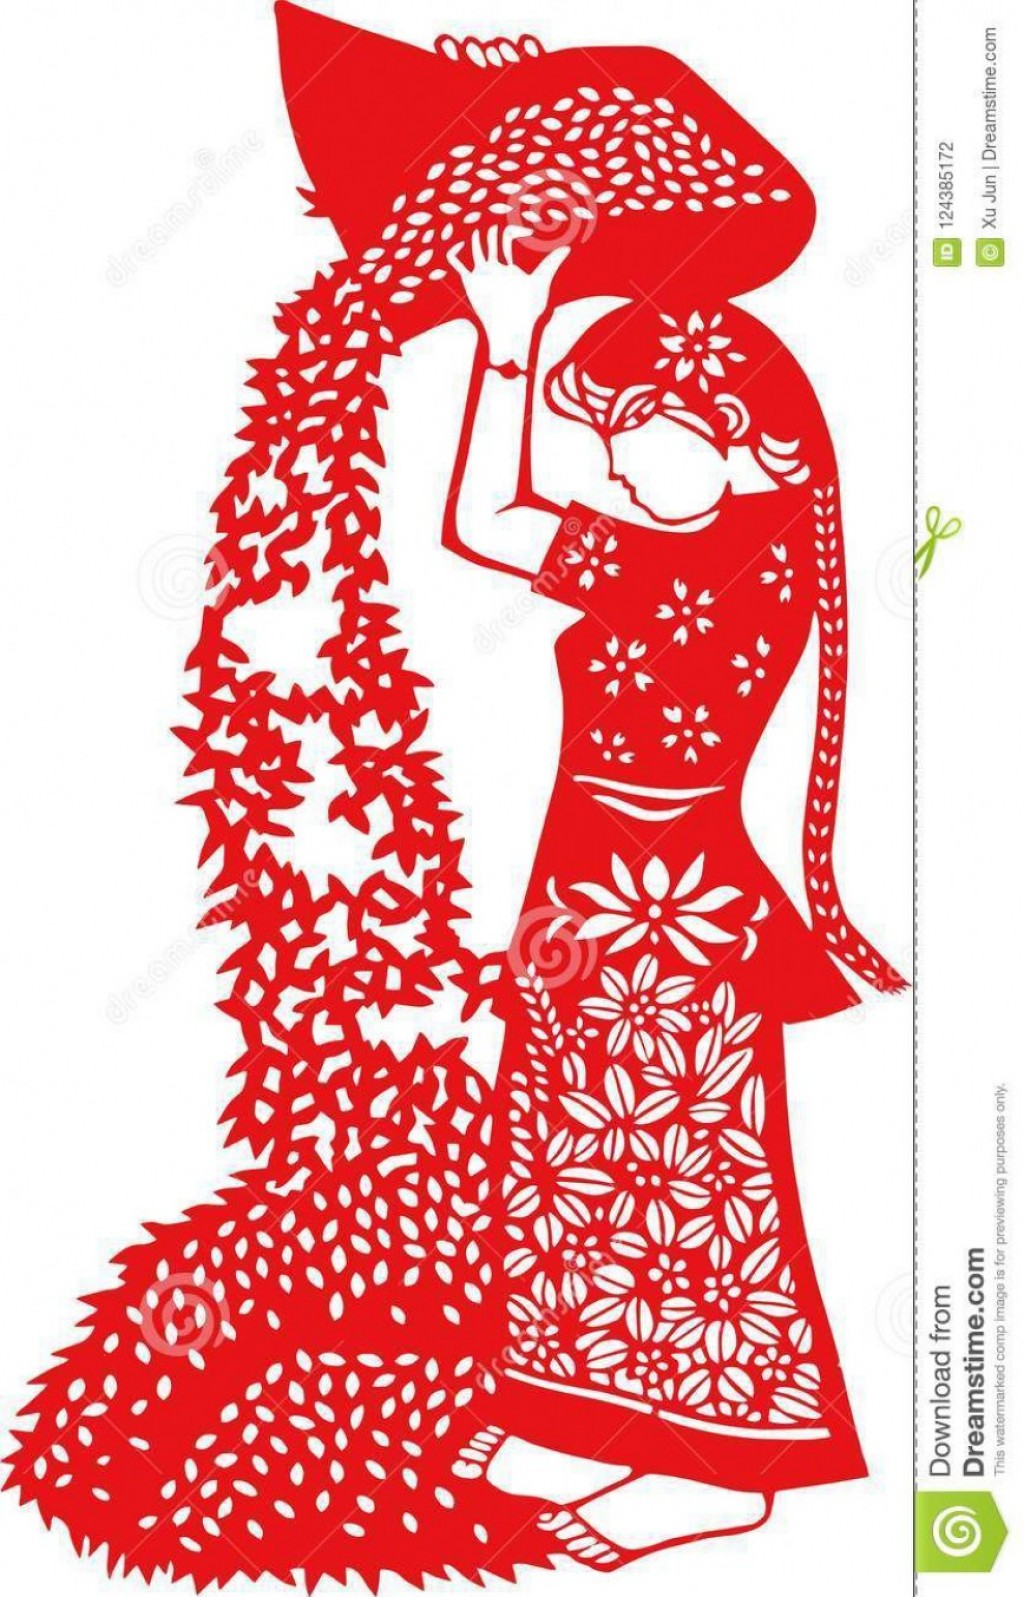 000 Simple Chinese Paper Cutting Template Inspiration  Pdf DragonLarge